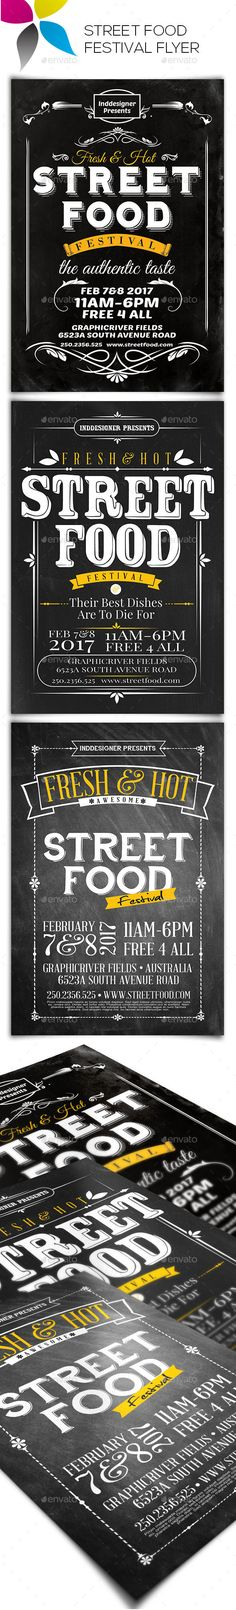 Street Food Festival Flyer — Photoshop PSD #street food festival flyer #street • Available here → https://graphicriver.net/item/street-food-festival-flyer/14861377?ref=pxcr